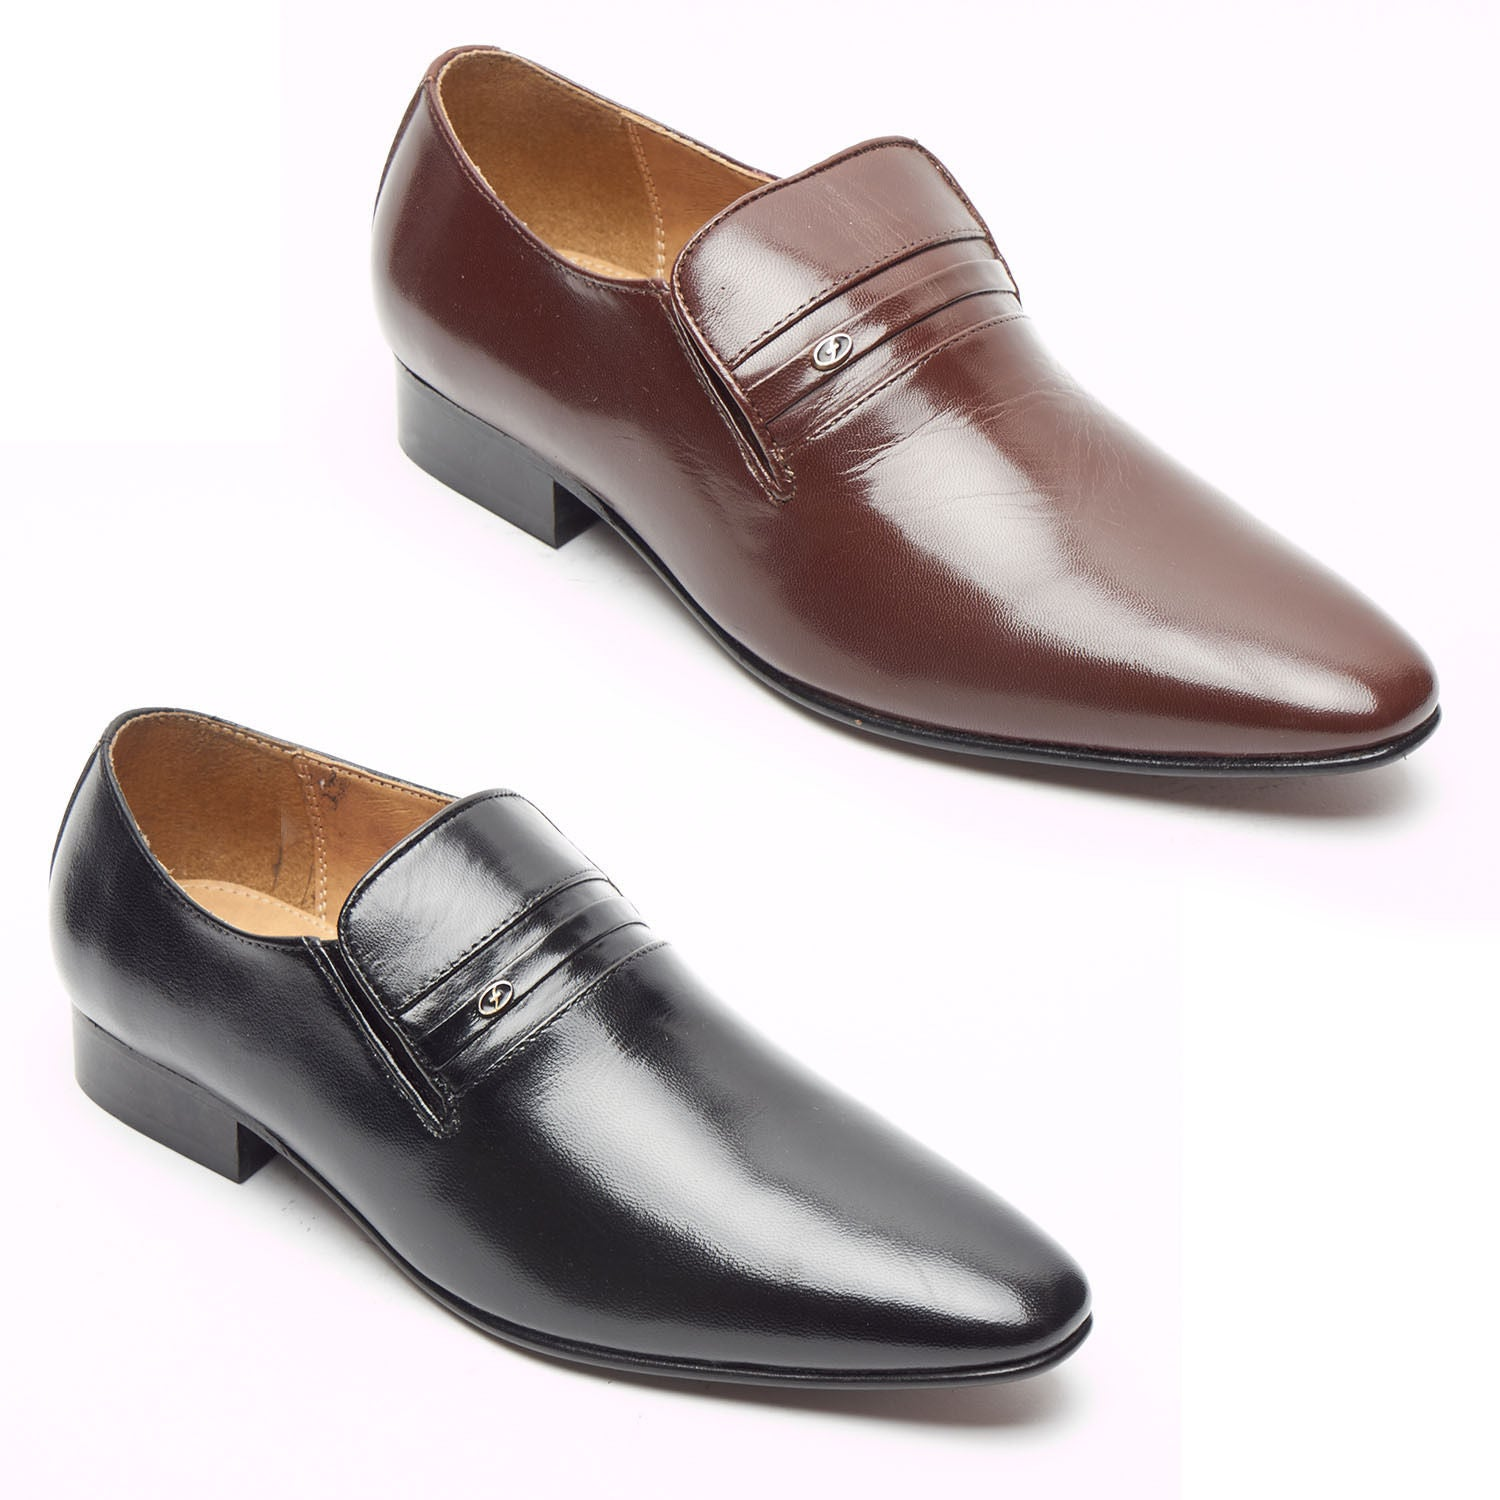 Mens Leather Spanish Shoes - 33453